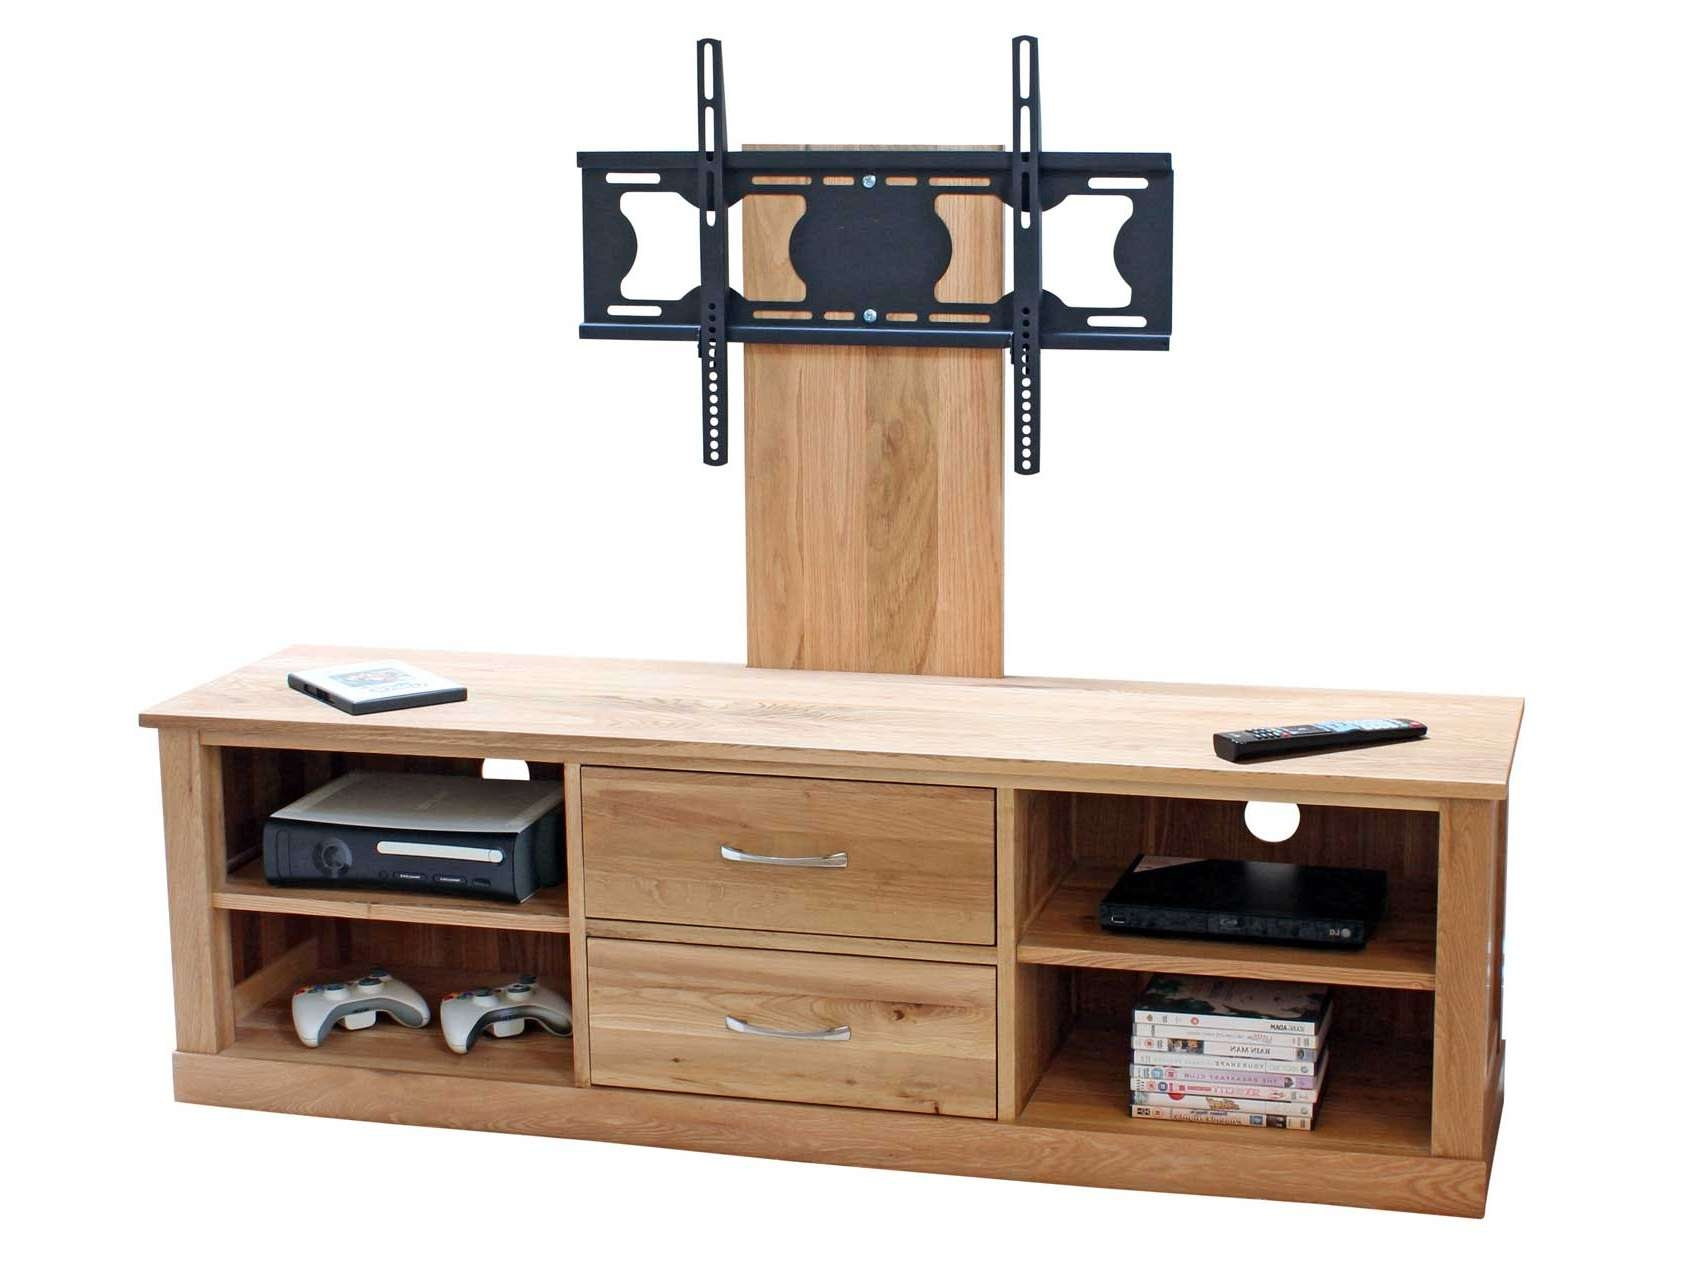 Home Decor: Wonderful Flat Screen Tv Stands With Mounts And Cool With Cheap Oak Tv Stands (View 6 of 15)